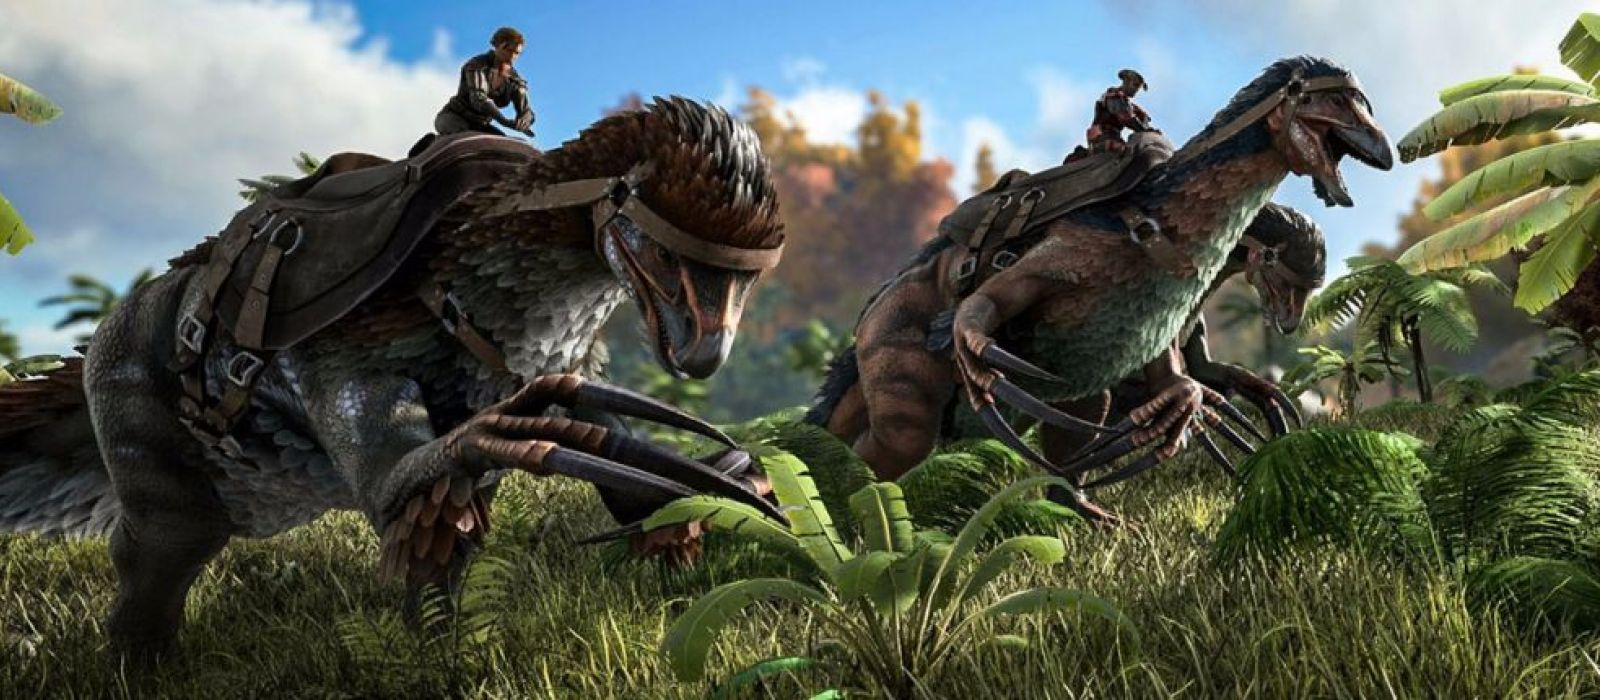 Релиз ARK: Survival Evolved отложен, известна новая дата выхода